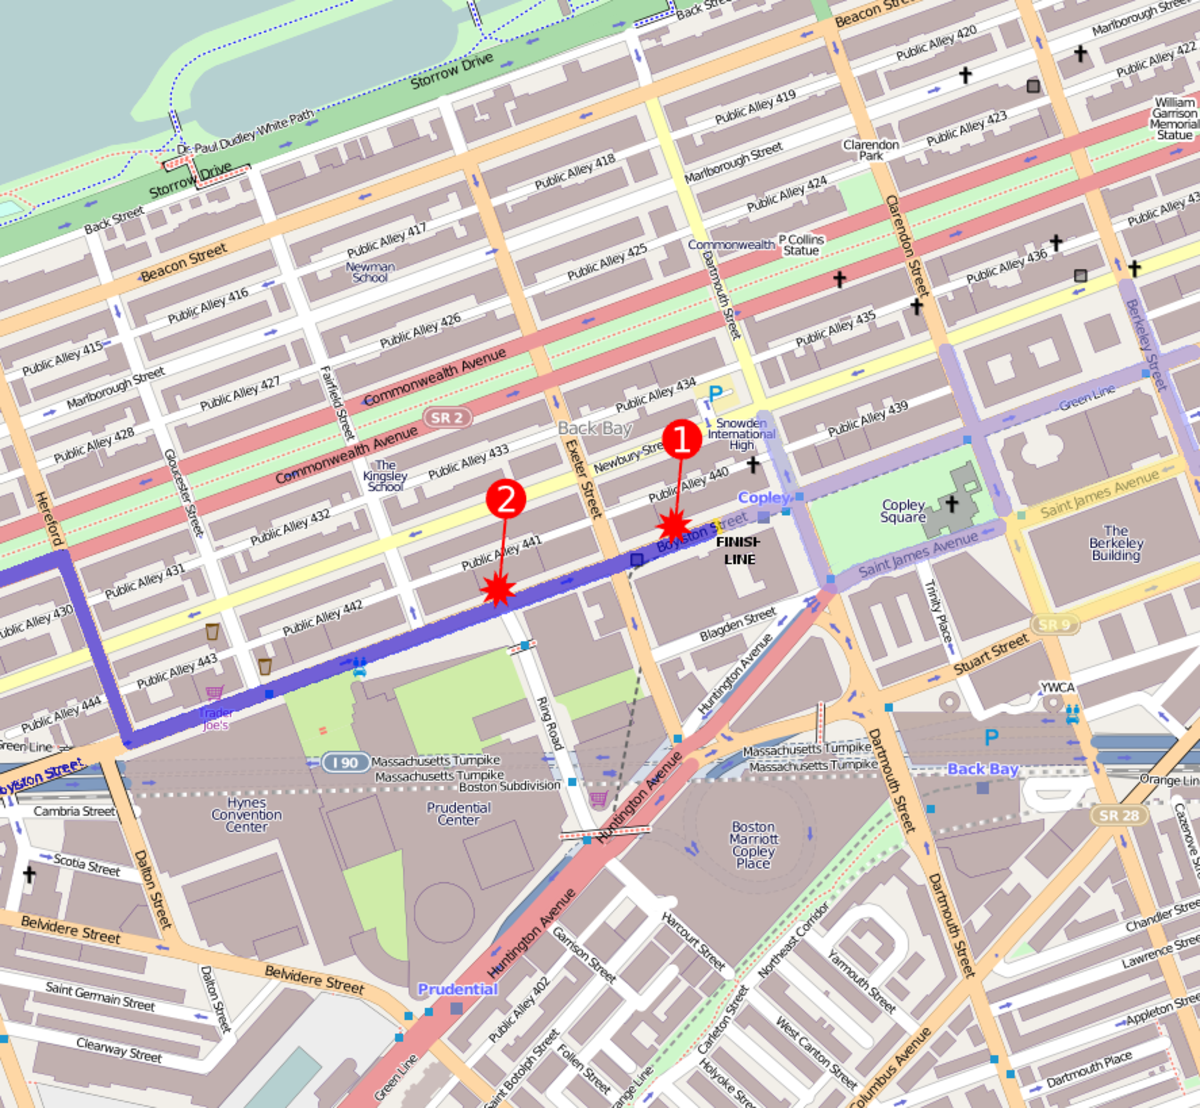 Location of the 2 bombs near the finish line.